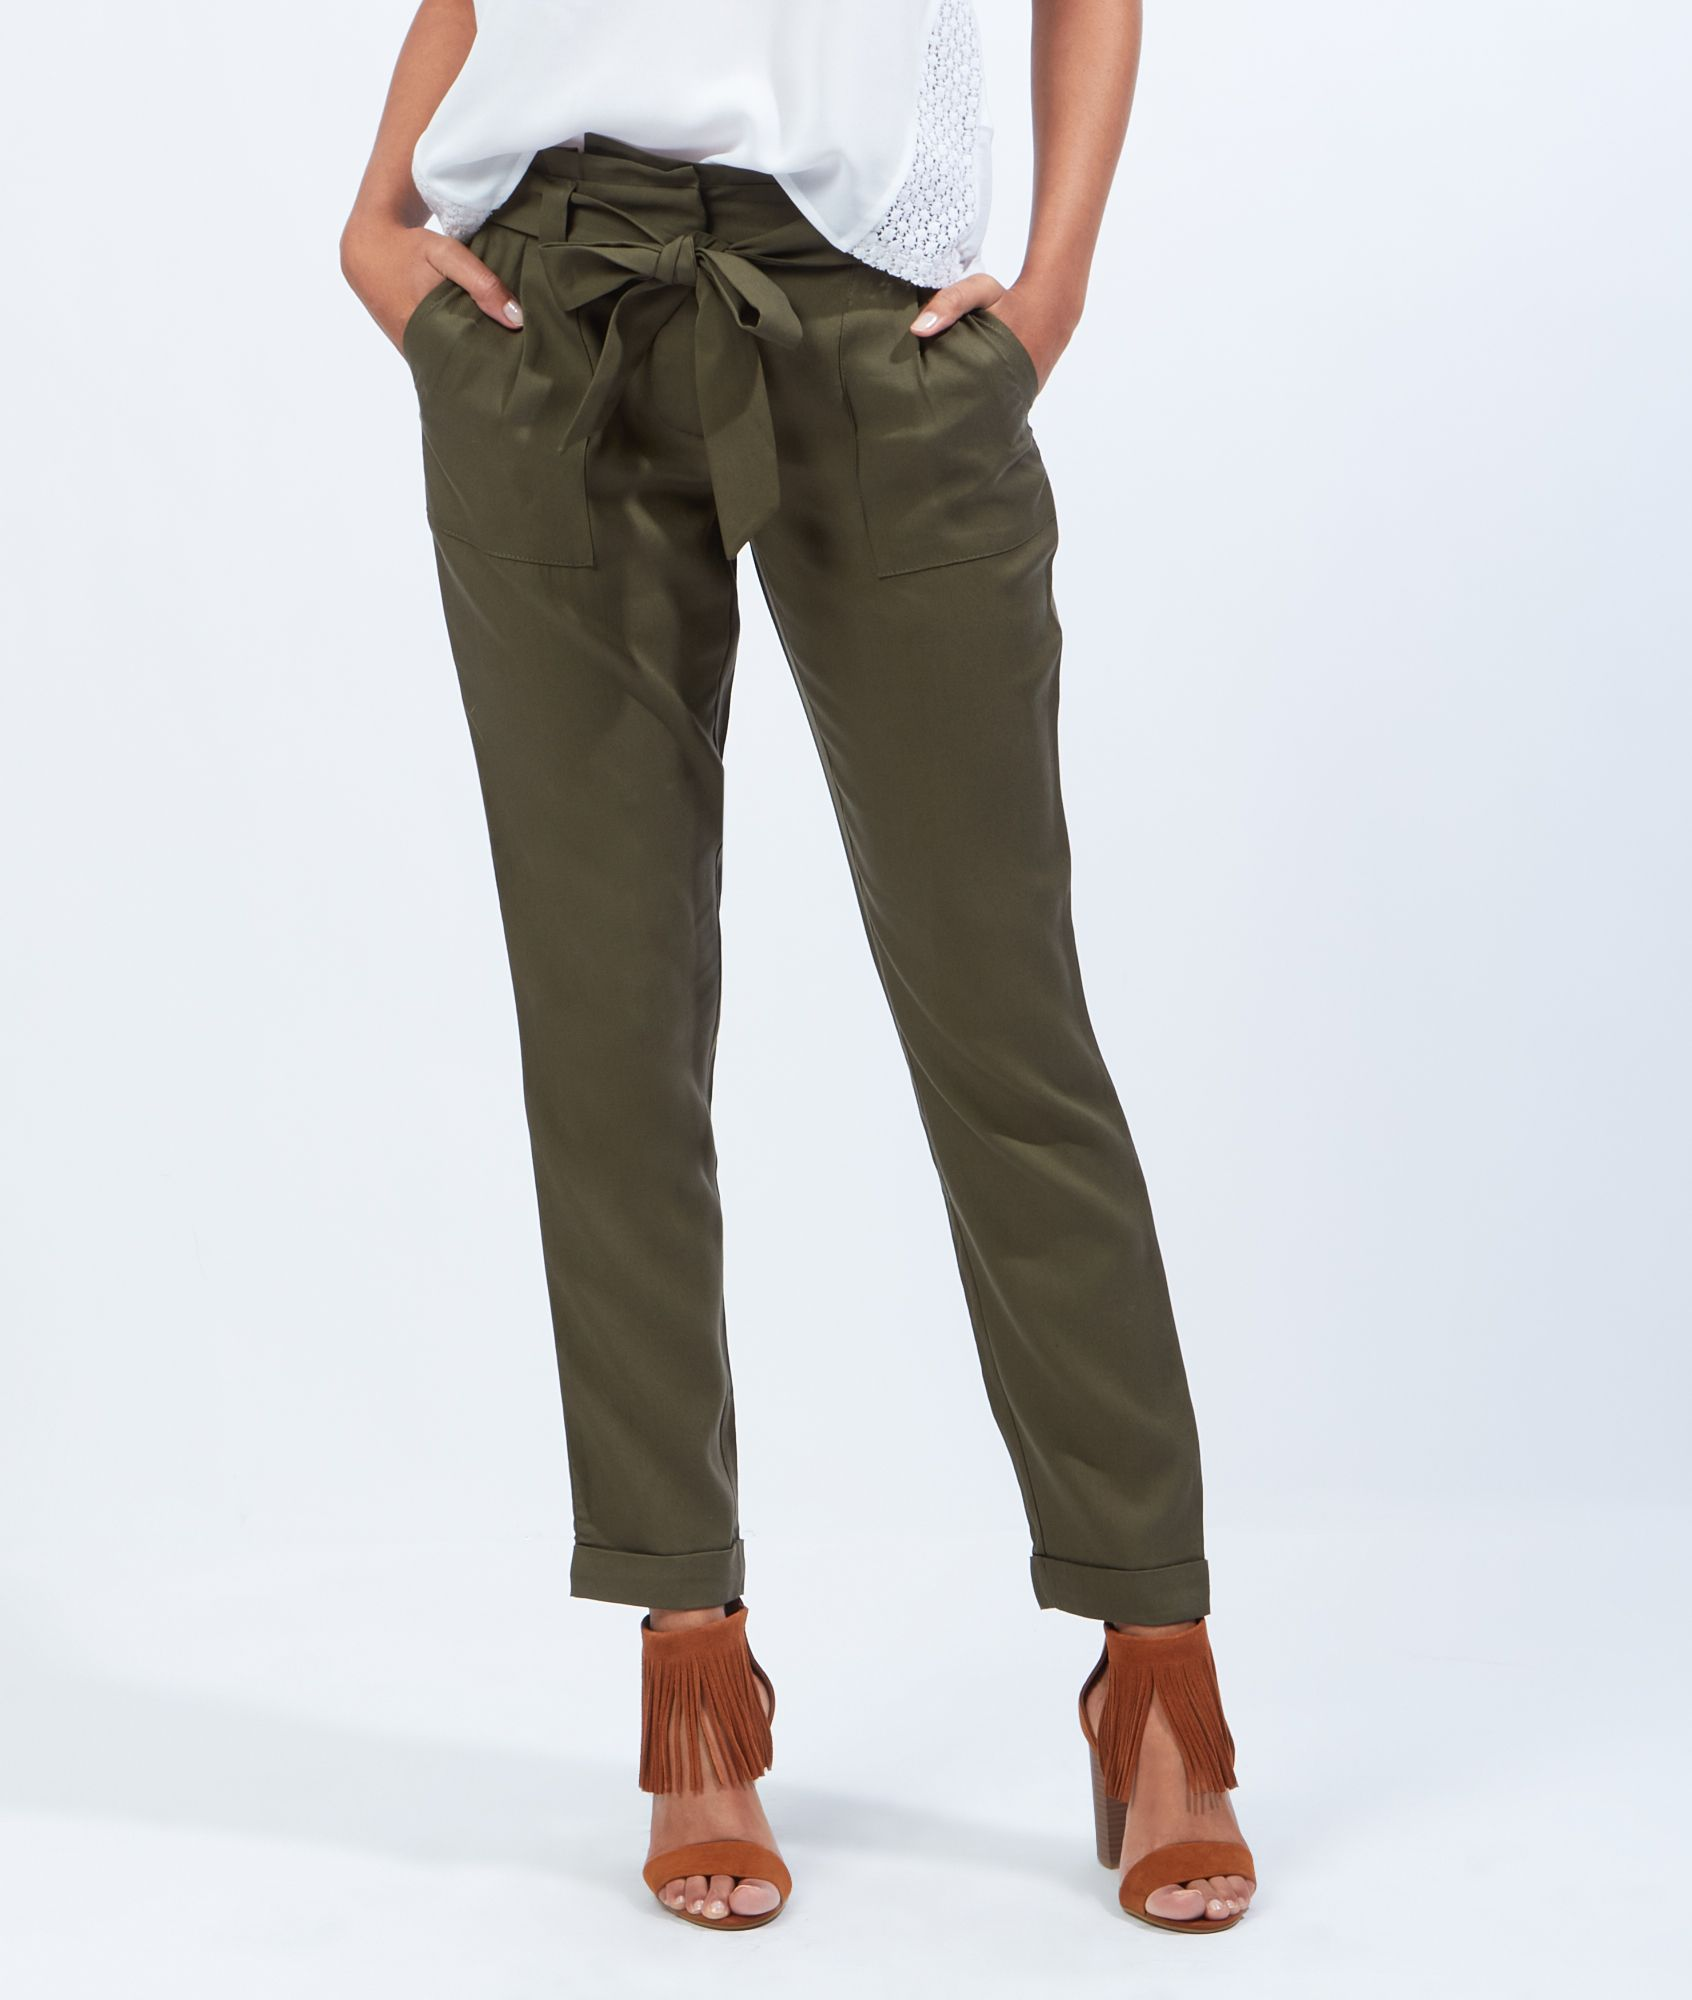 Pantalon fluide en lyocell ceinture noeud pantalons shorts la collection pr t porter - Comment couper un pantalon en short ...